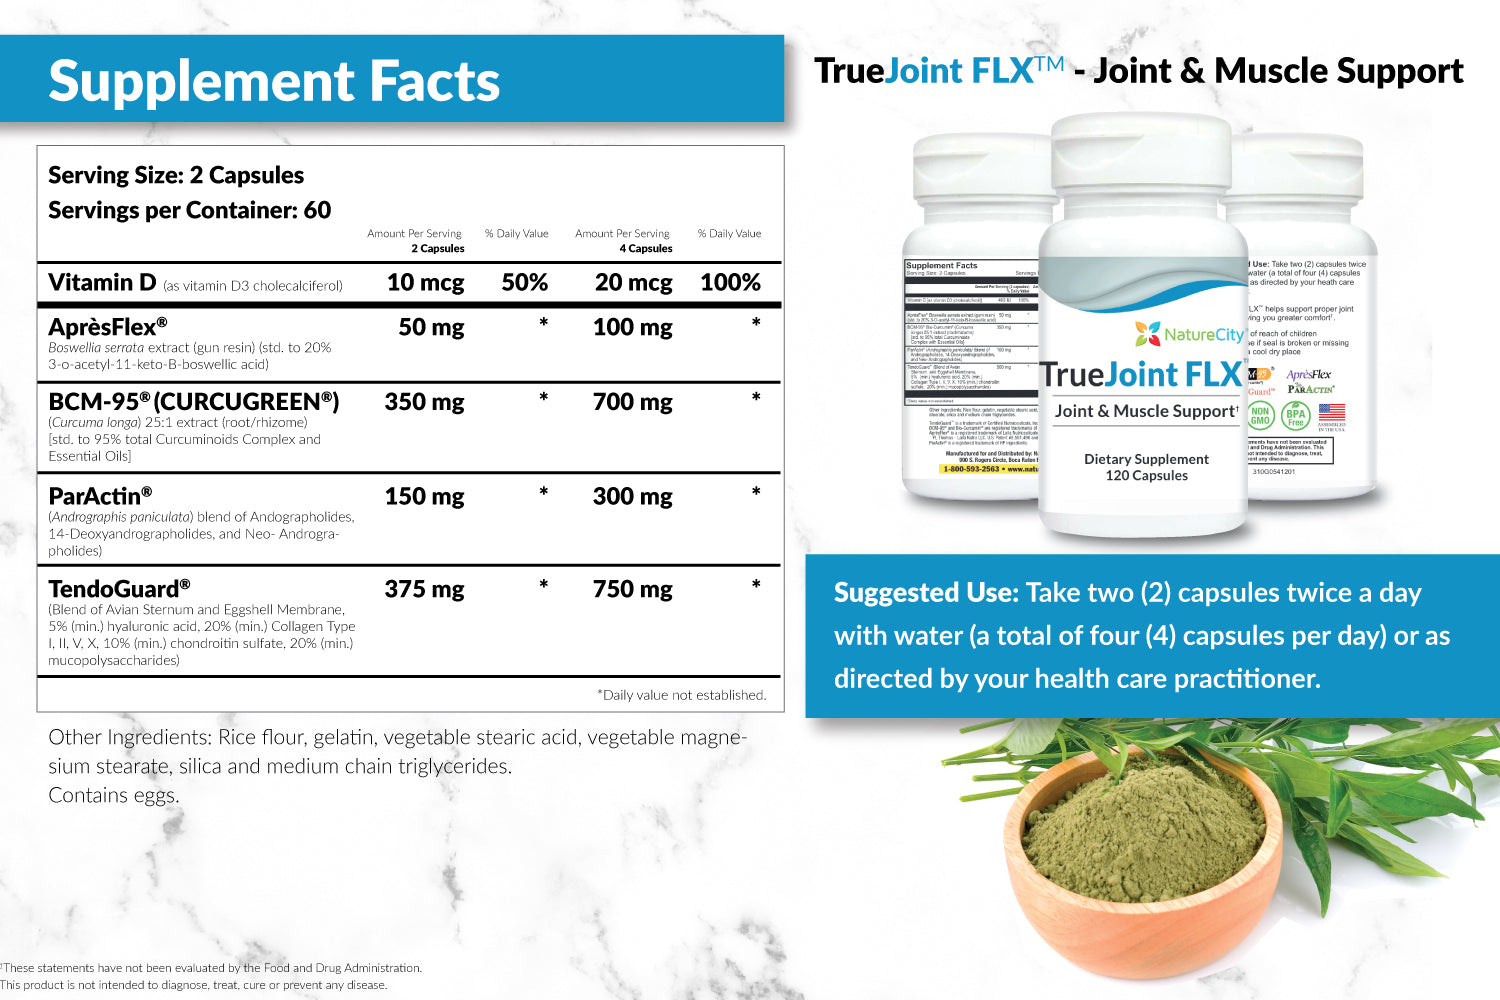 TrueJoint FLX Joint Support Supplement Facts Suggested Use